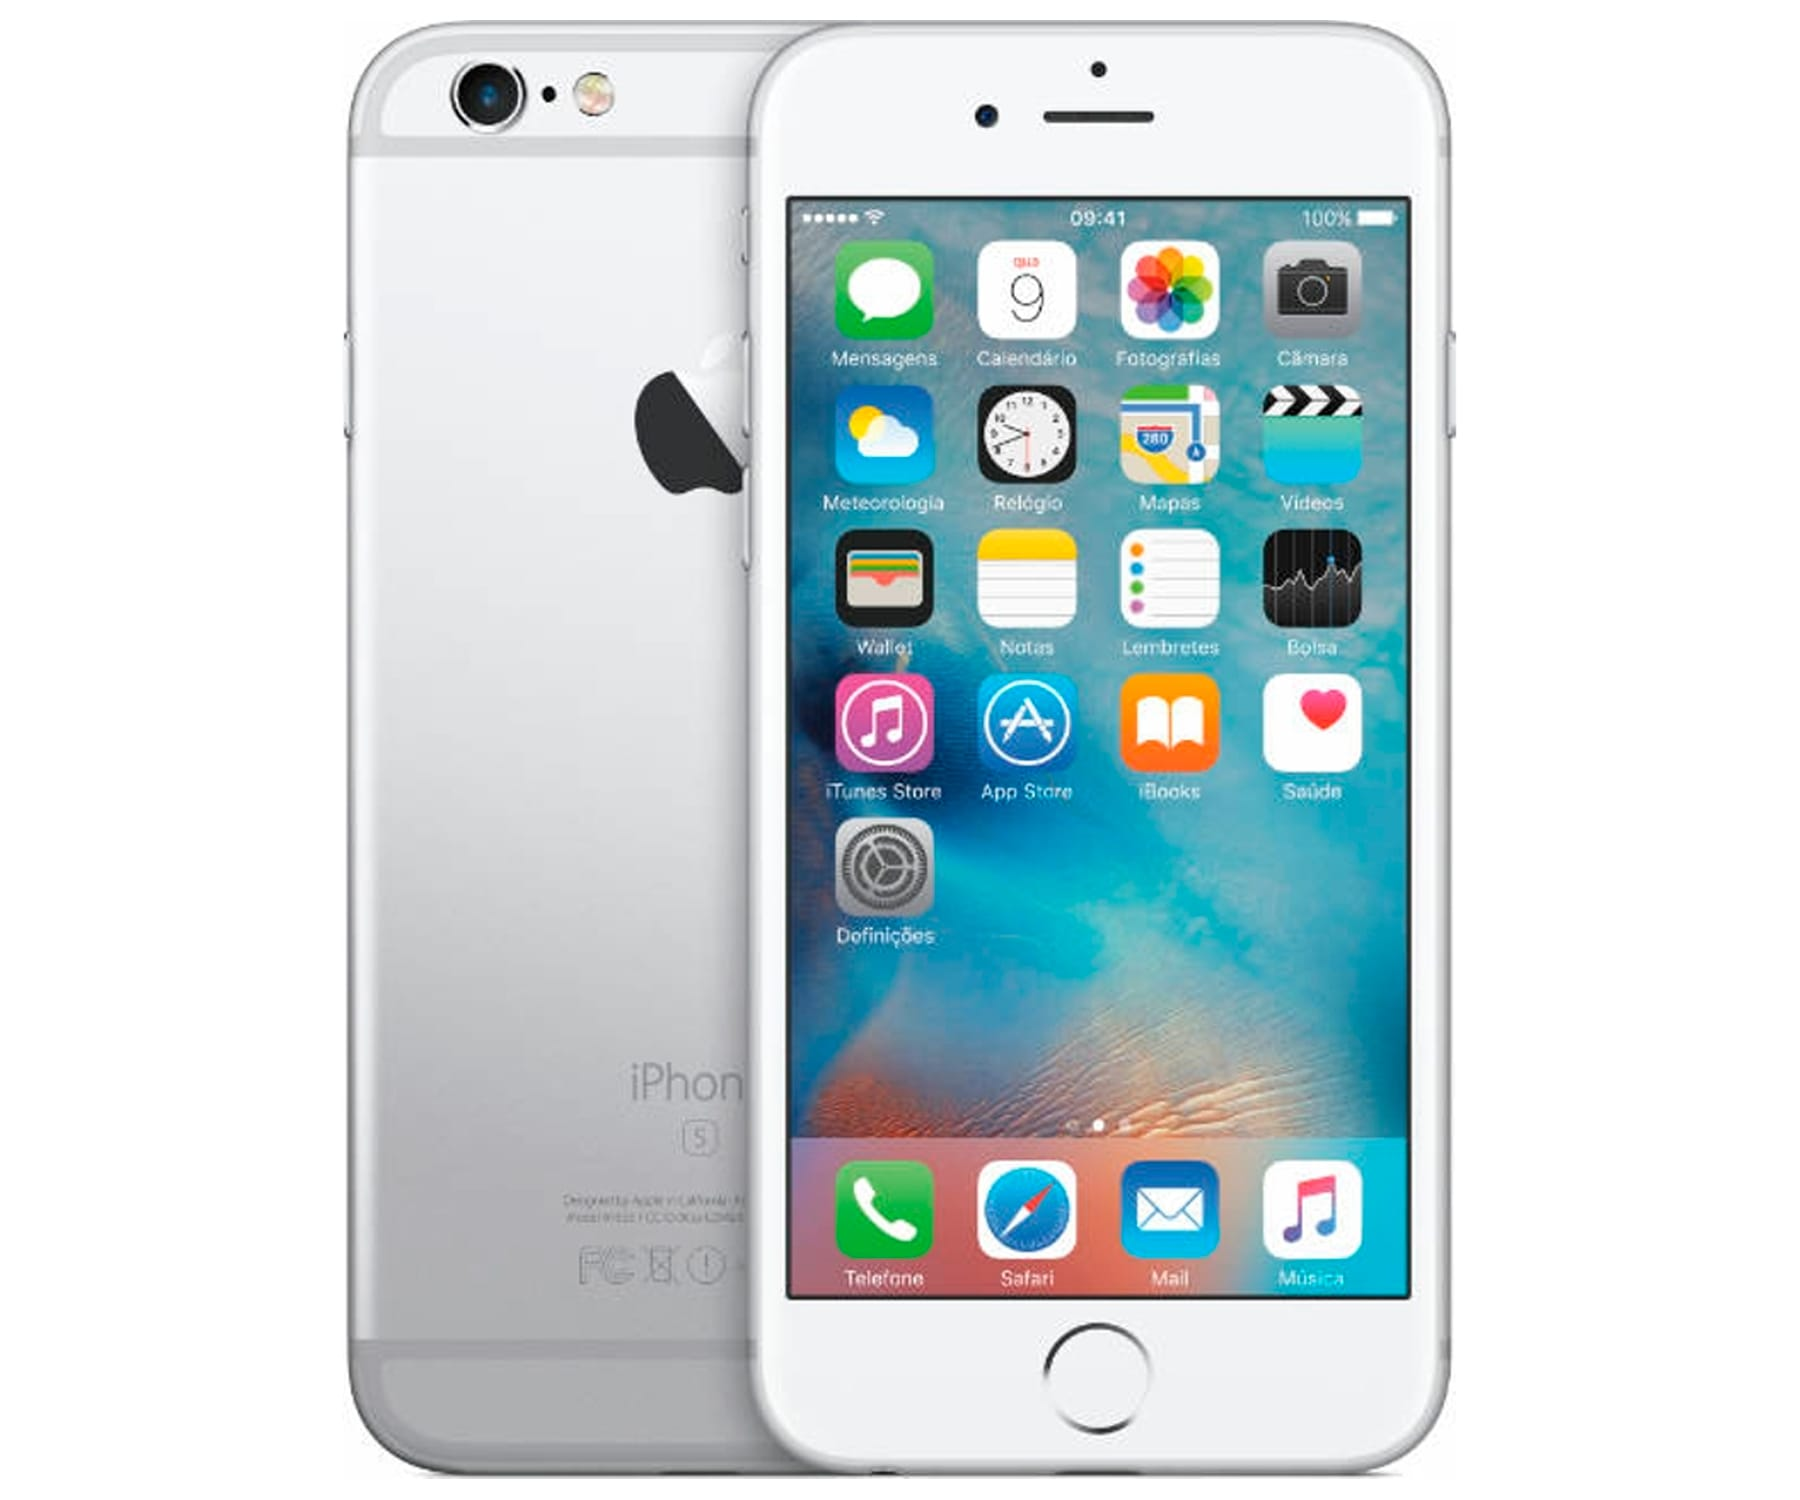 APPLE IPHONE 6S 64GB PLATA REACONDICIONADO CPO MÓVIL 4G 4.7 RETINA HD/2CORE/64GB/2GB RAM/12MP/5MP